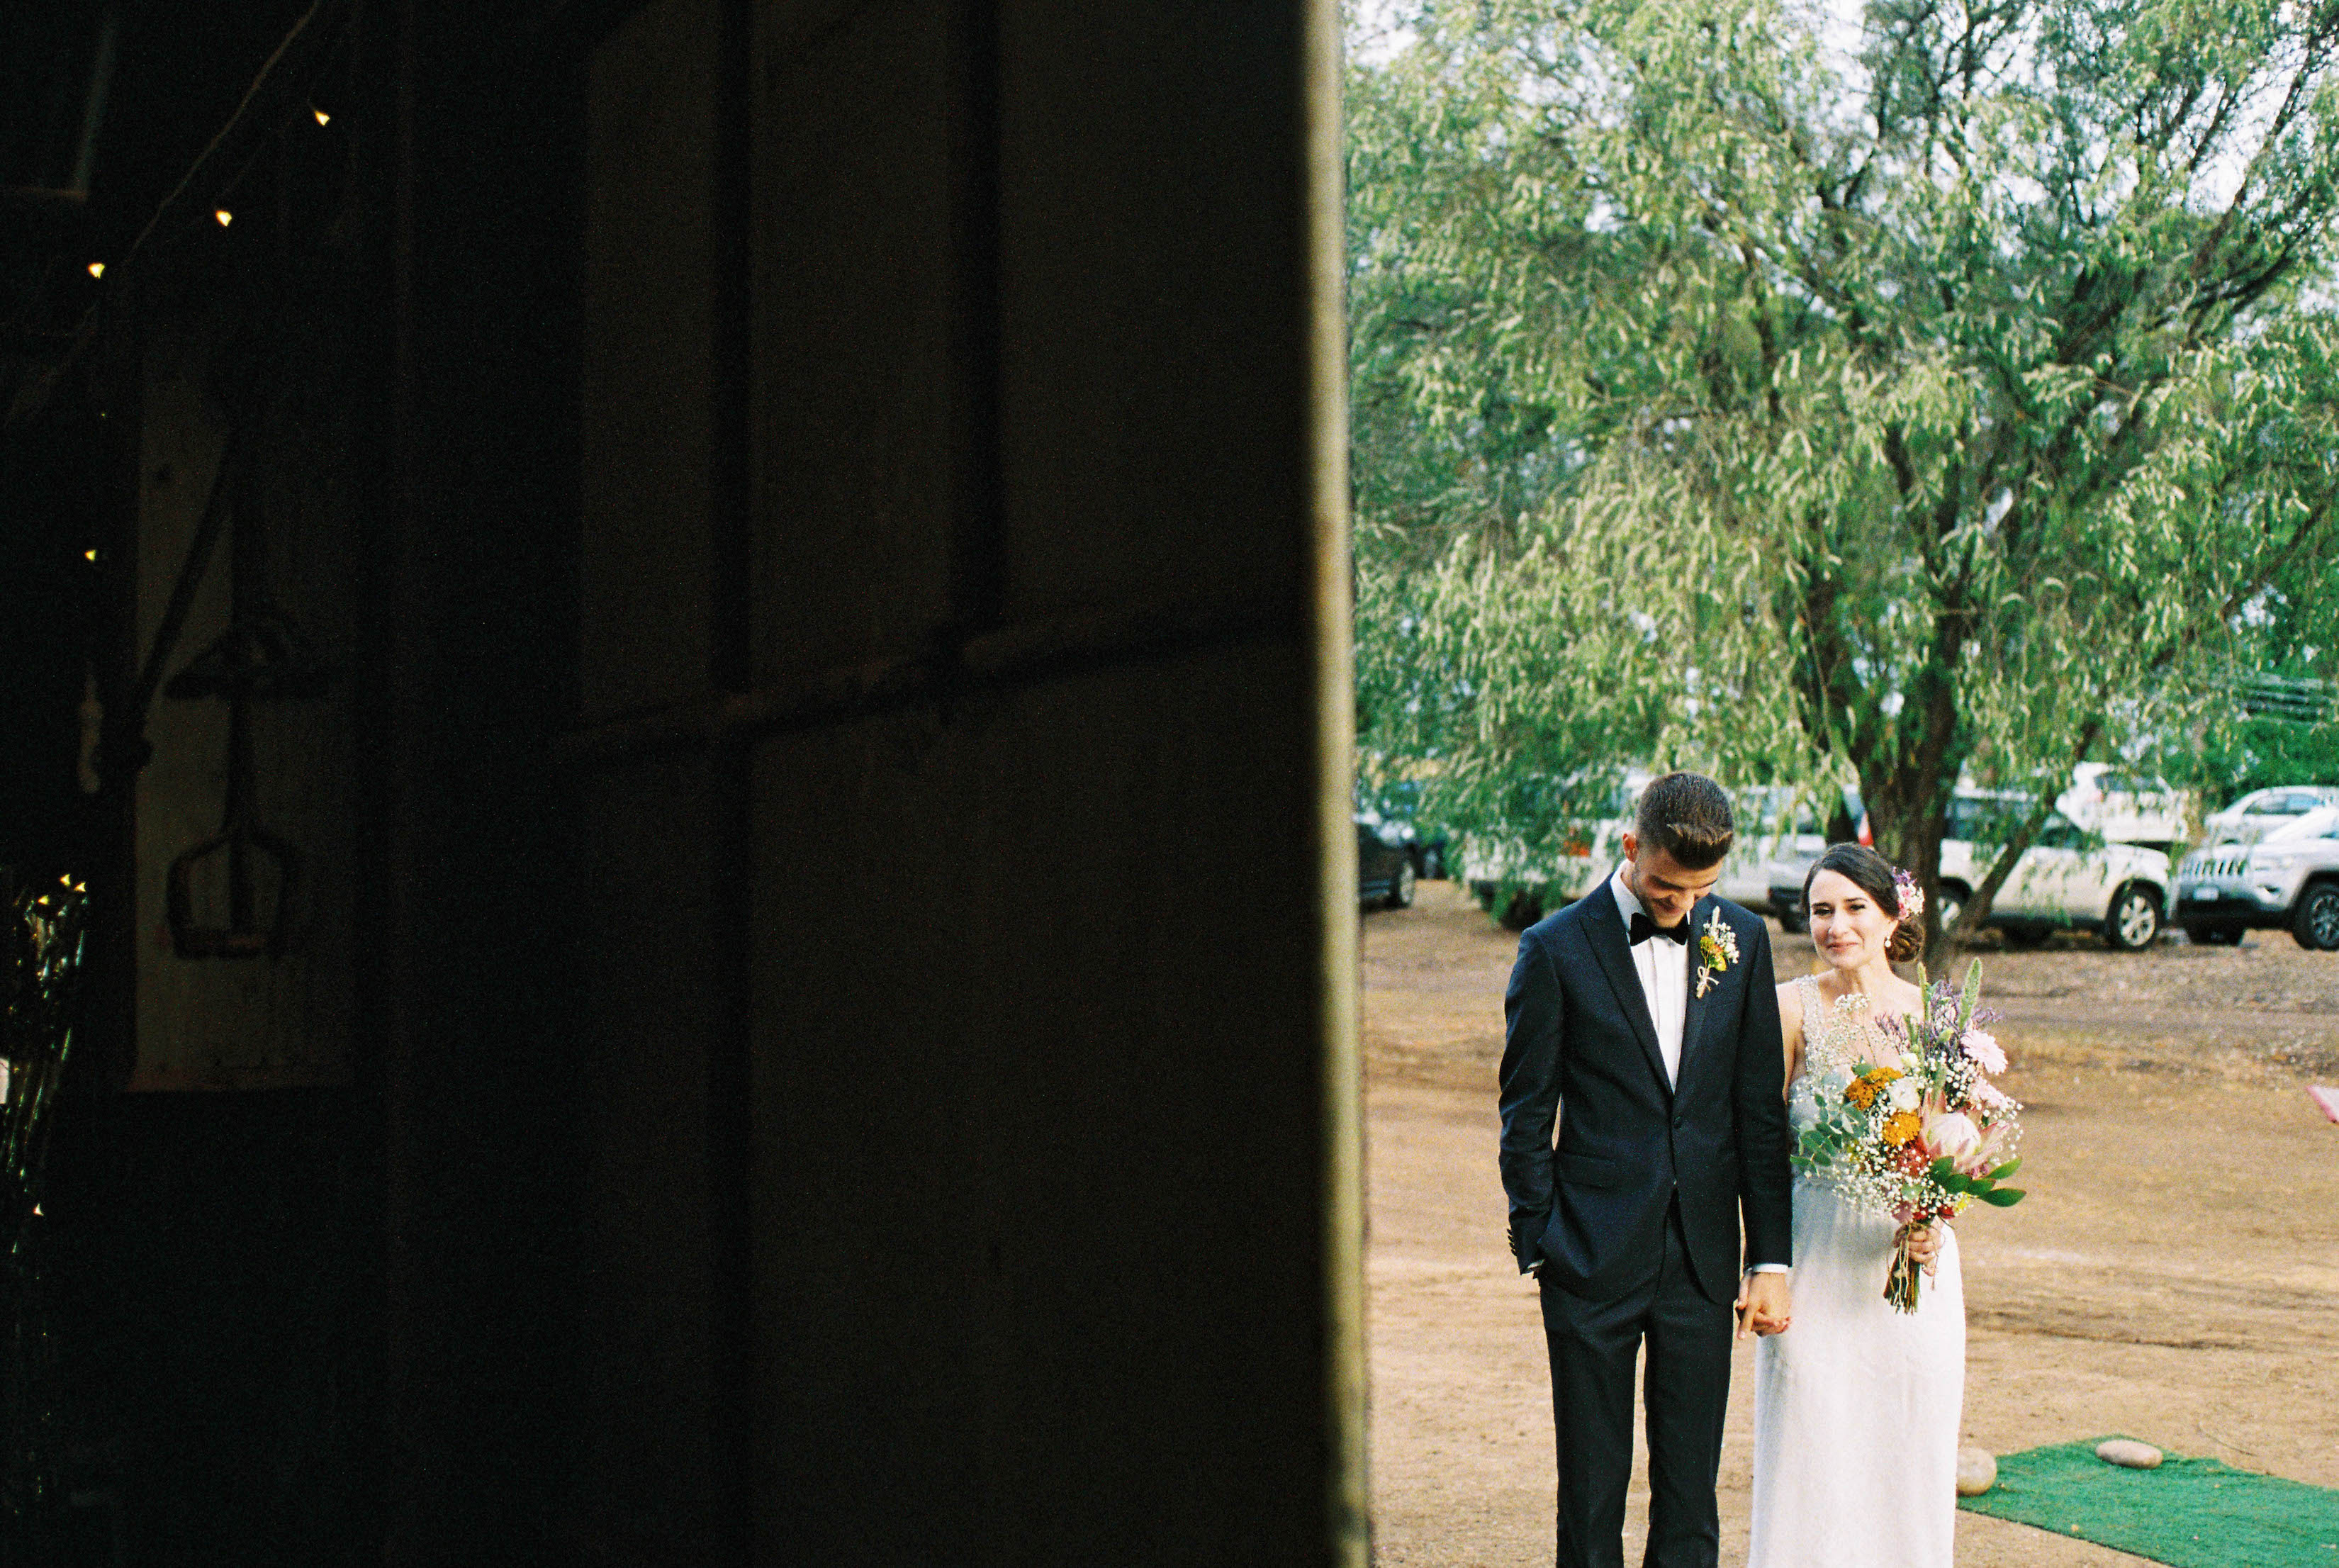 A wedding photo of the bride & groom waiting for their introduction at their Farm Wedding Reception